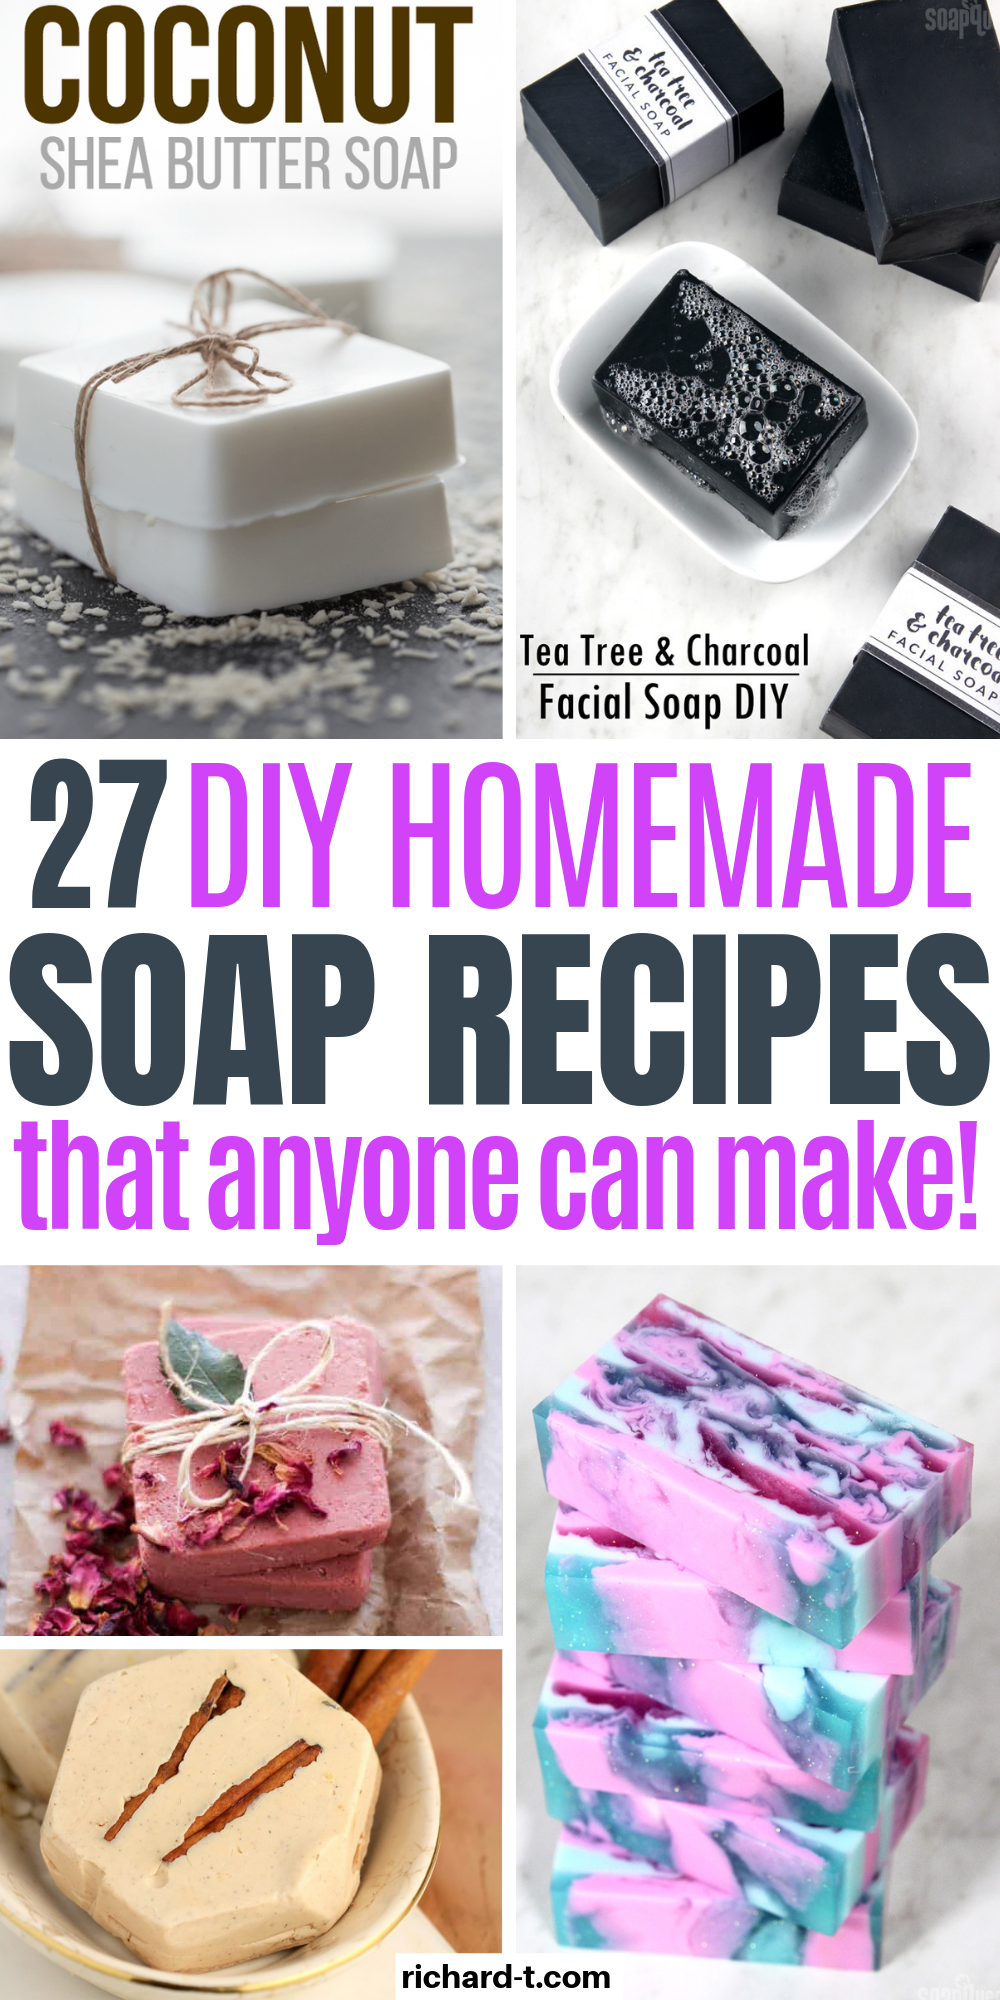 27 DIY Homemade Soap Recipes That Smell Amazing